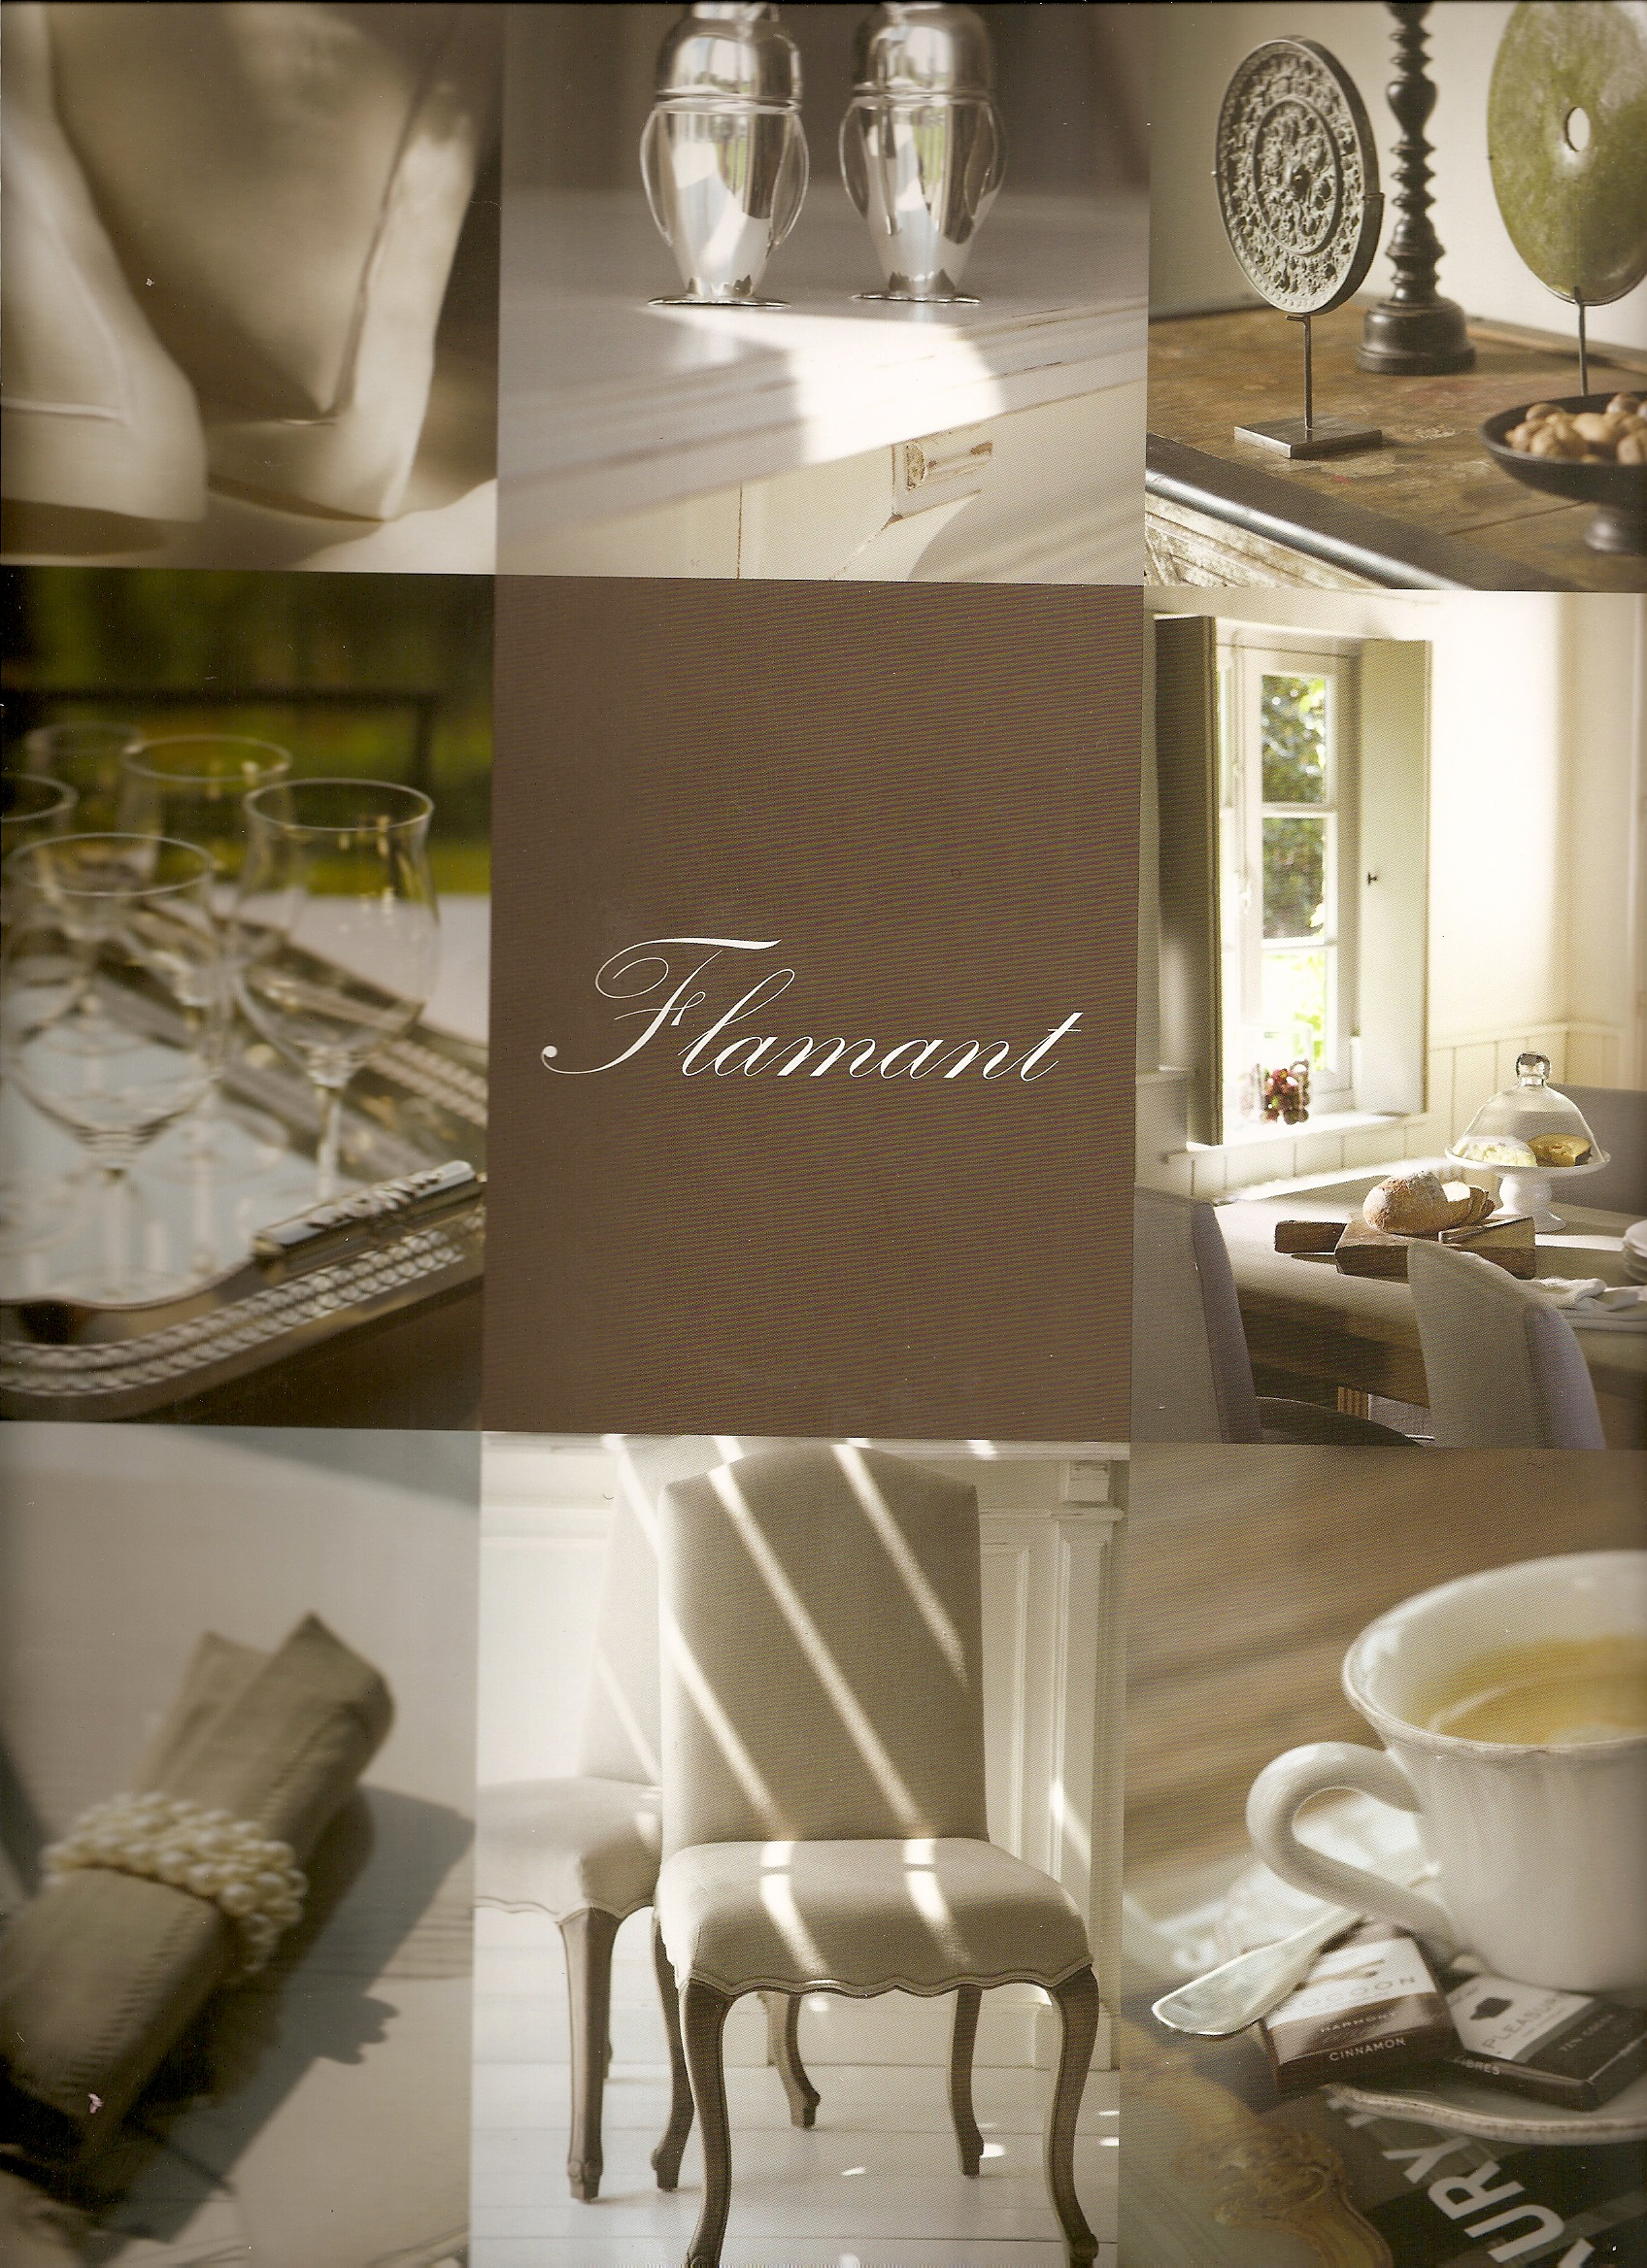 Flamant  Rustic Chic at Its Best  Rustic Chic